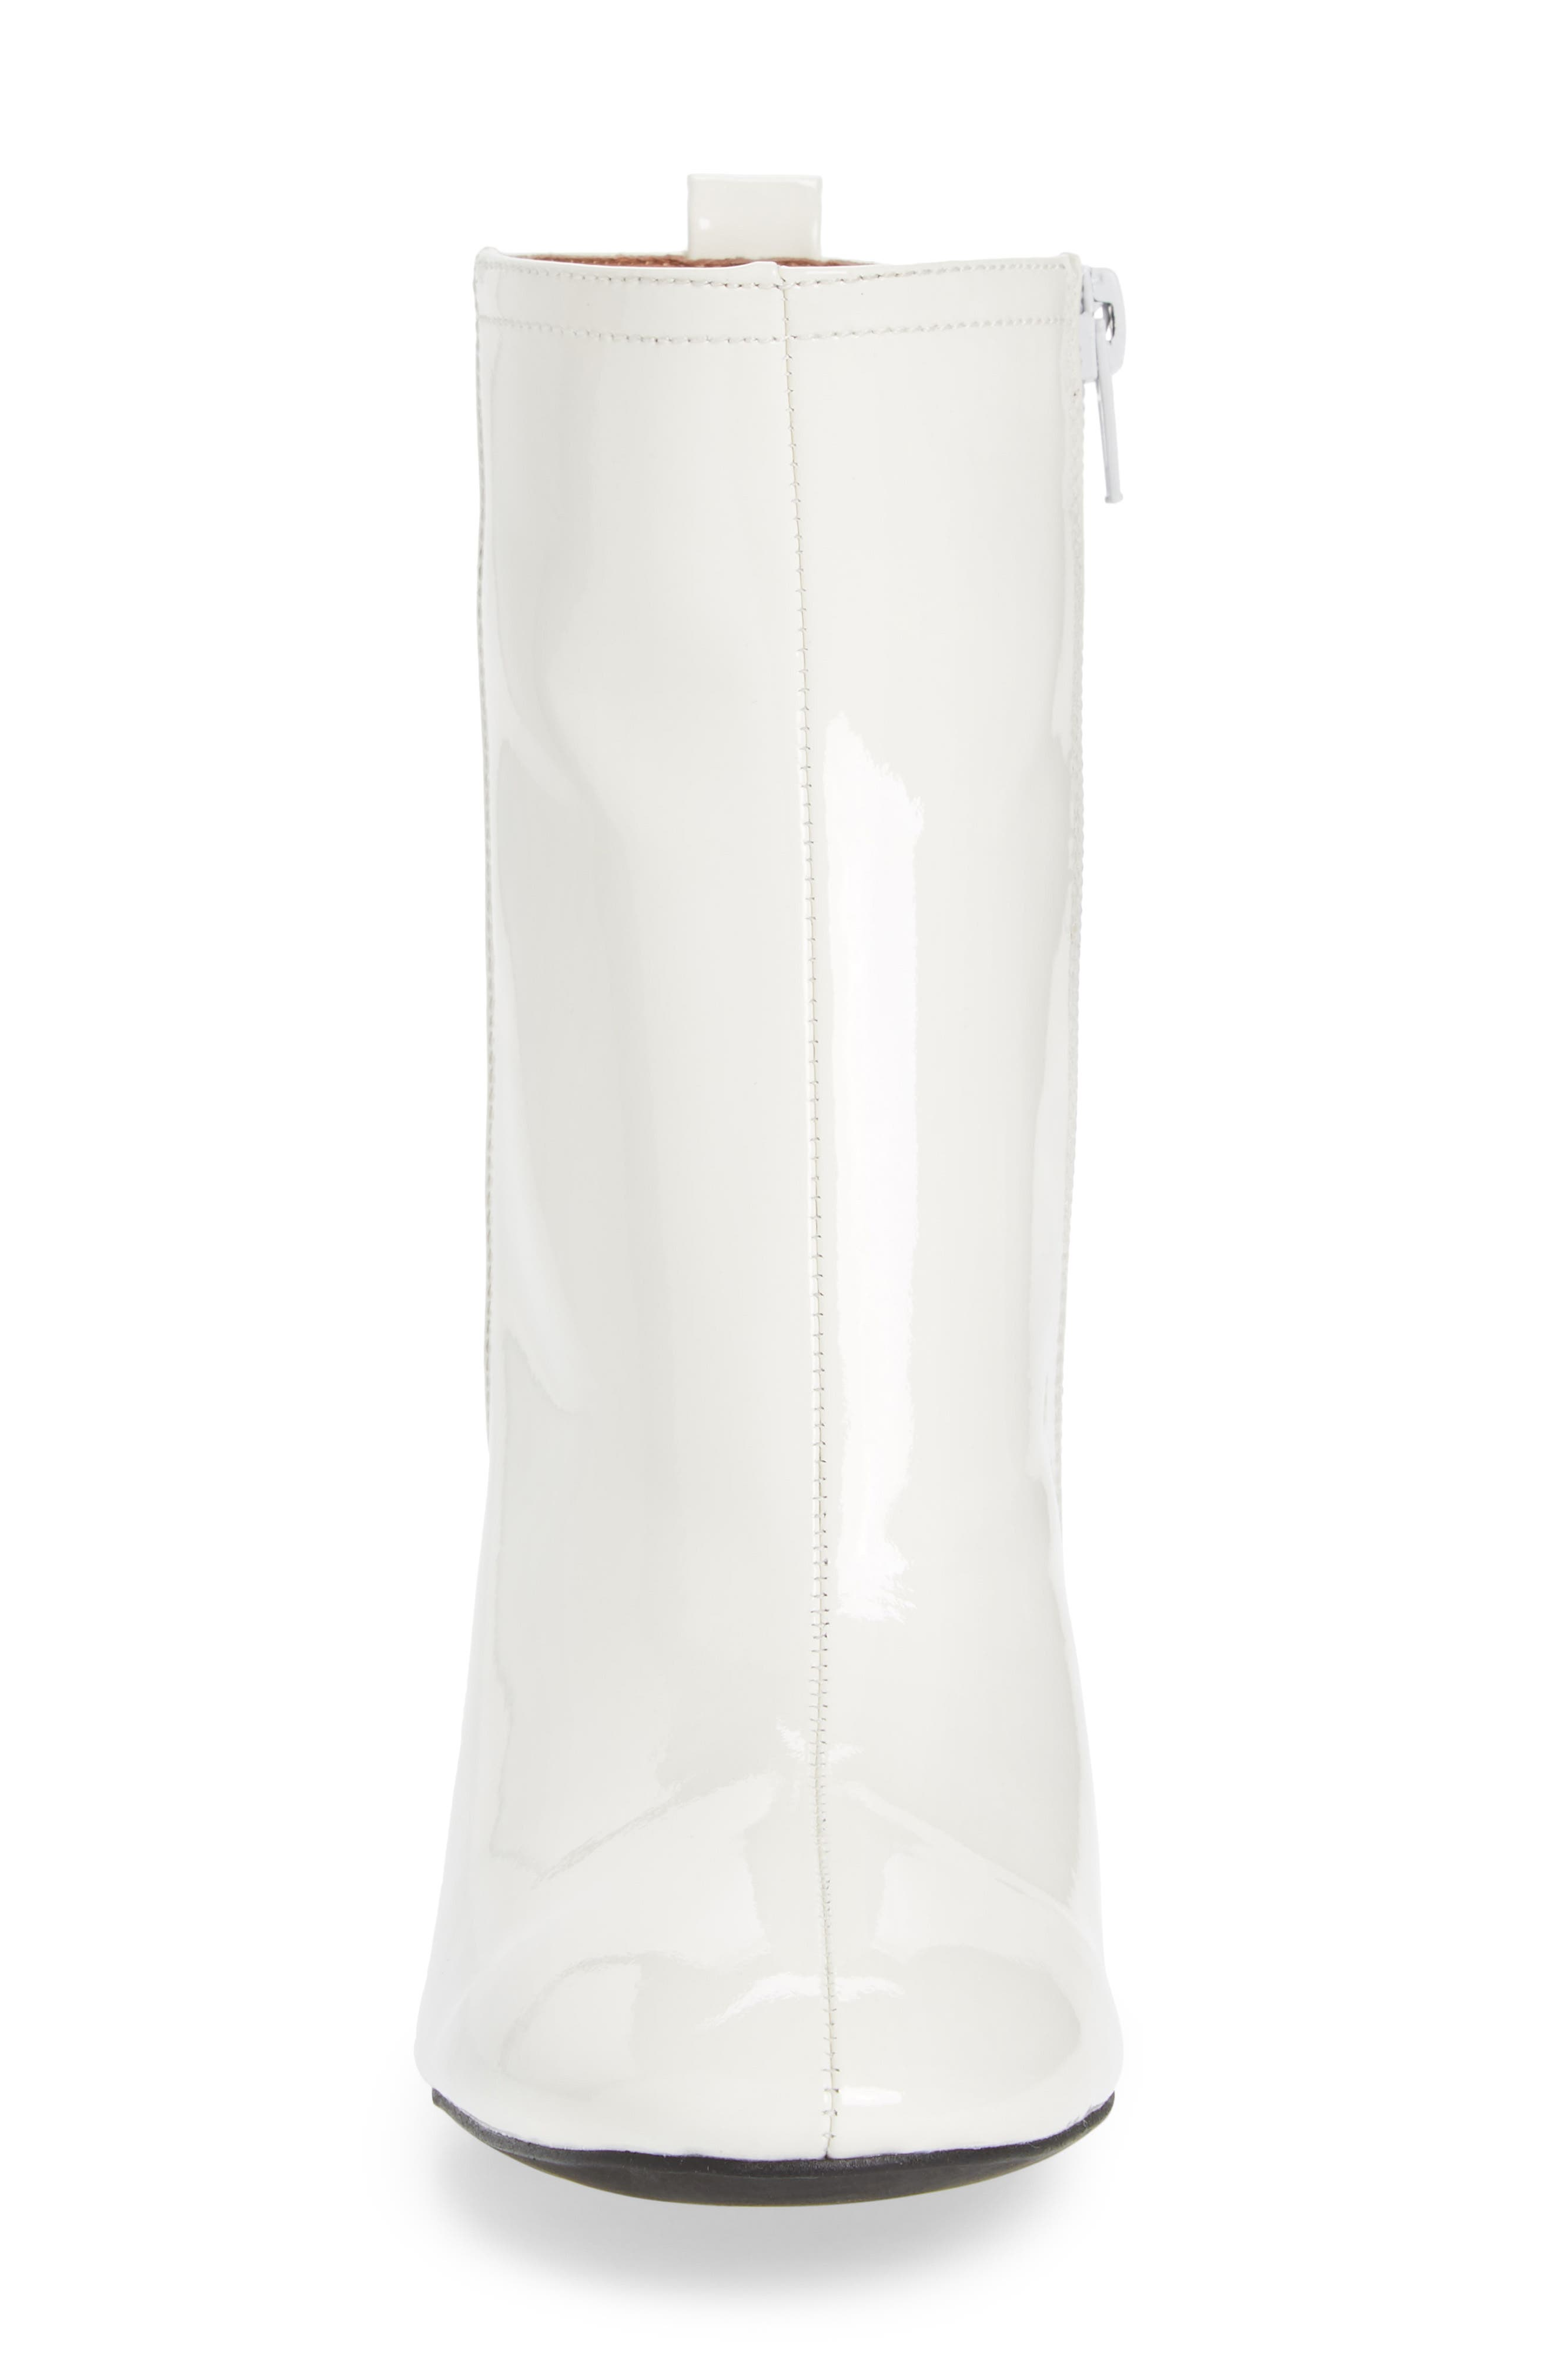 Chapel Curved Heel Bootie,                             Alternate thumbnail 4, color,                             White Patent Leather